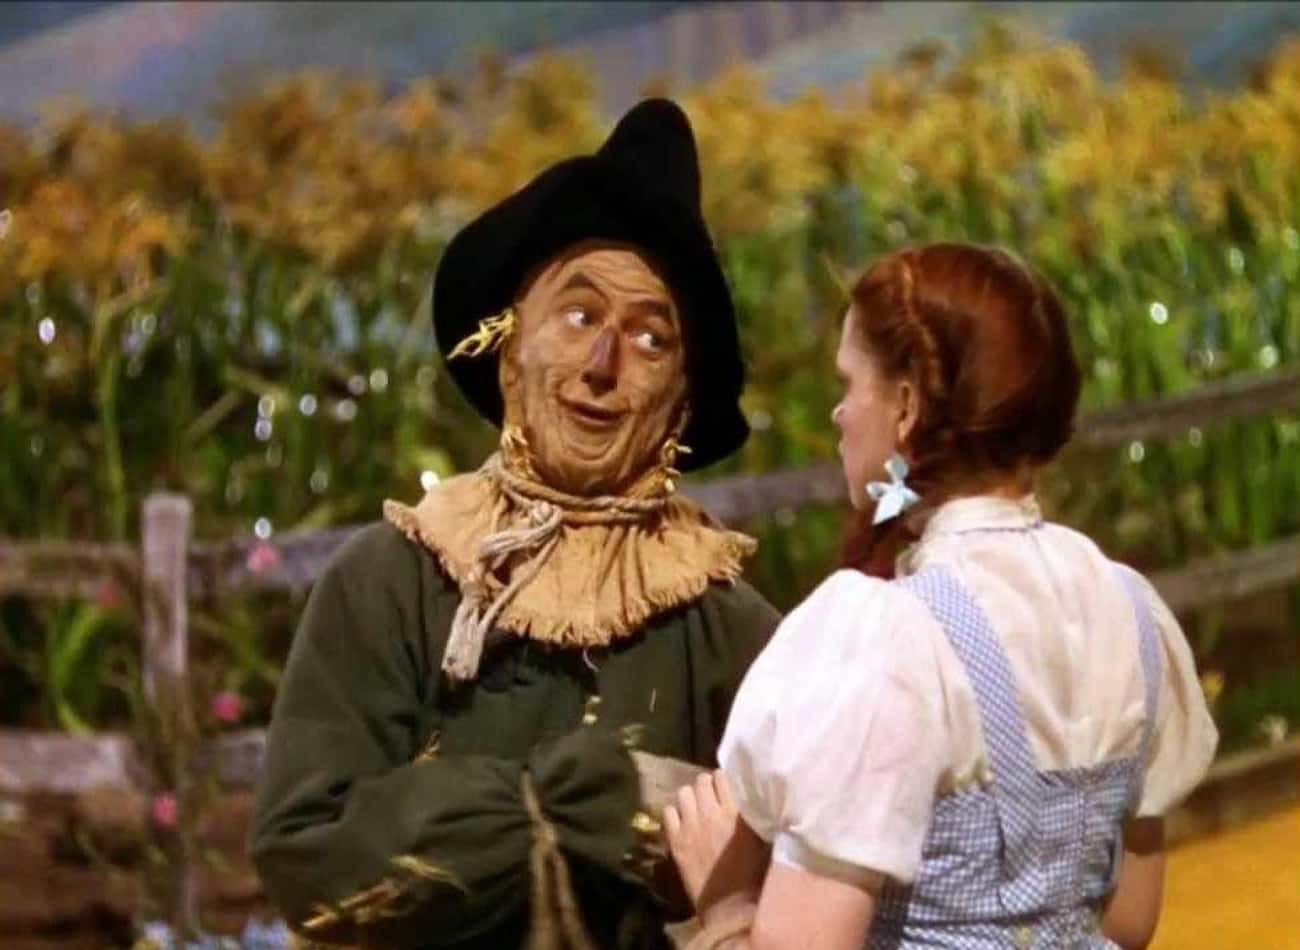 The Scarecrow Represents Midwe is listed (or ranked) 3 on the list The Secret Political Symbolism You Never Knew Was Hidden Within The Wizard Of Oz